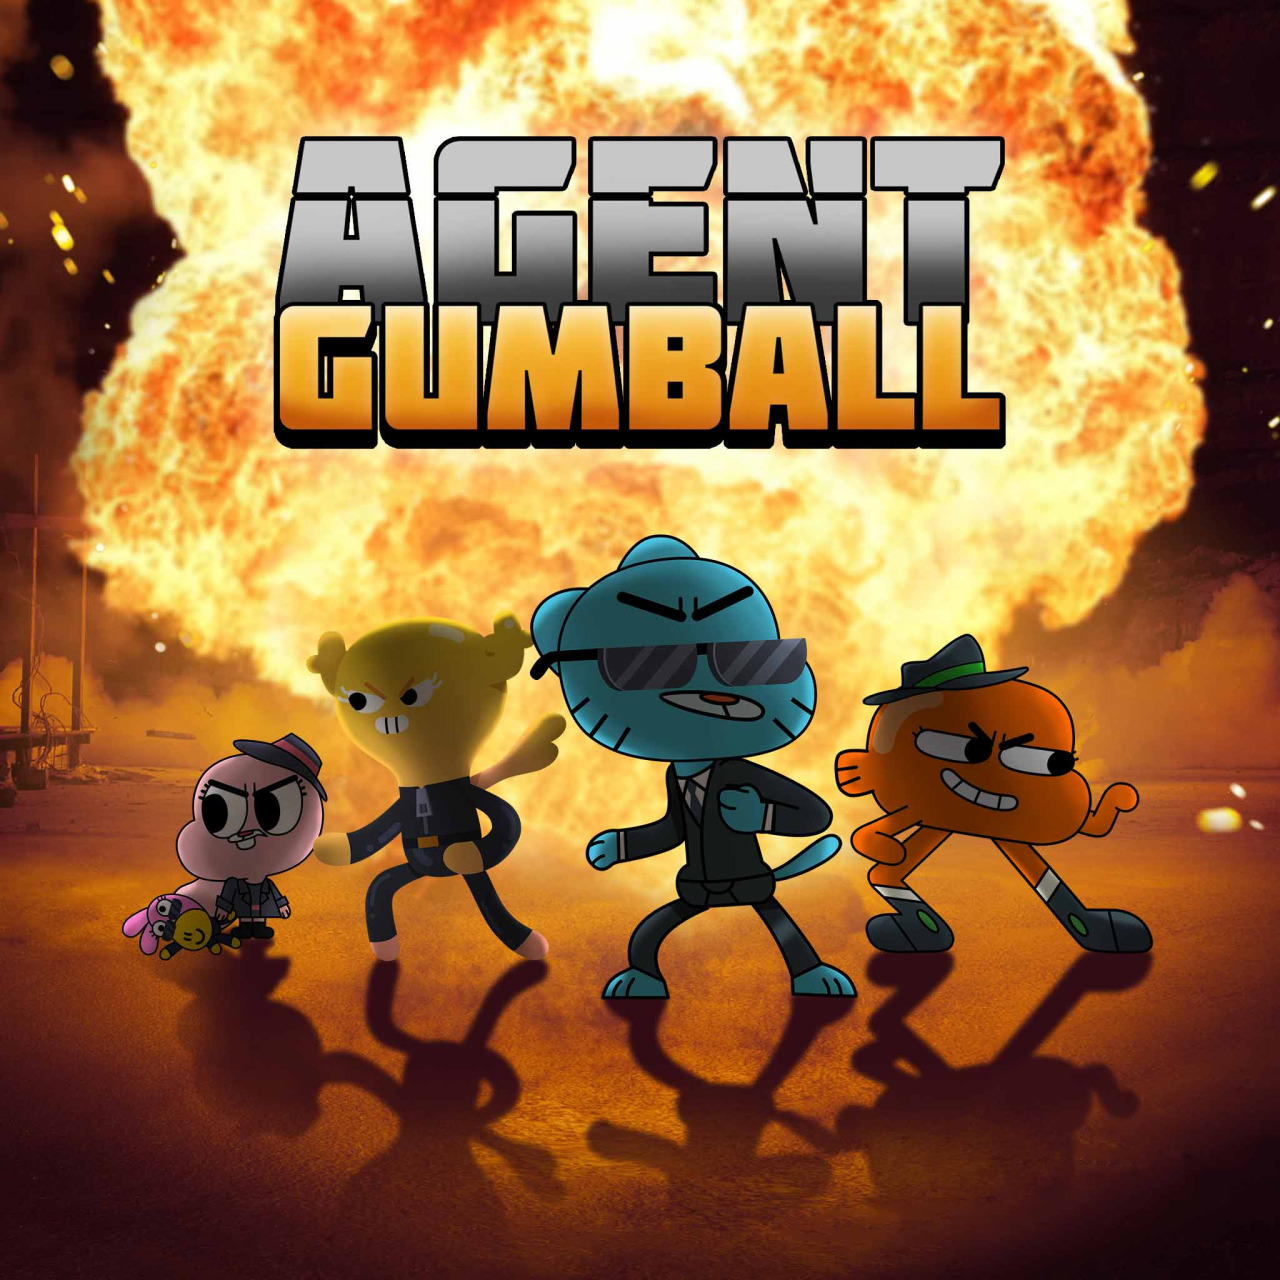 gumball the remote ending relationship